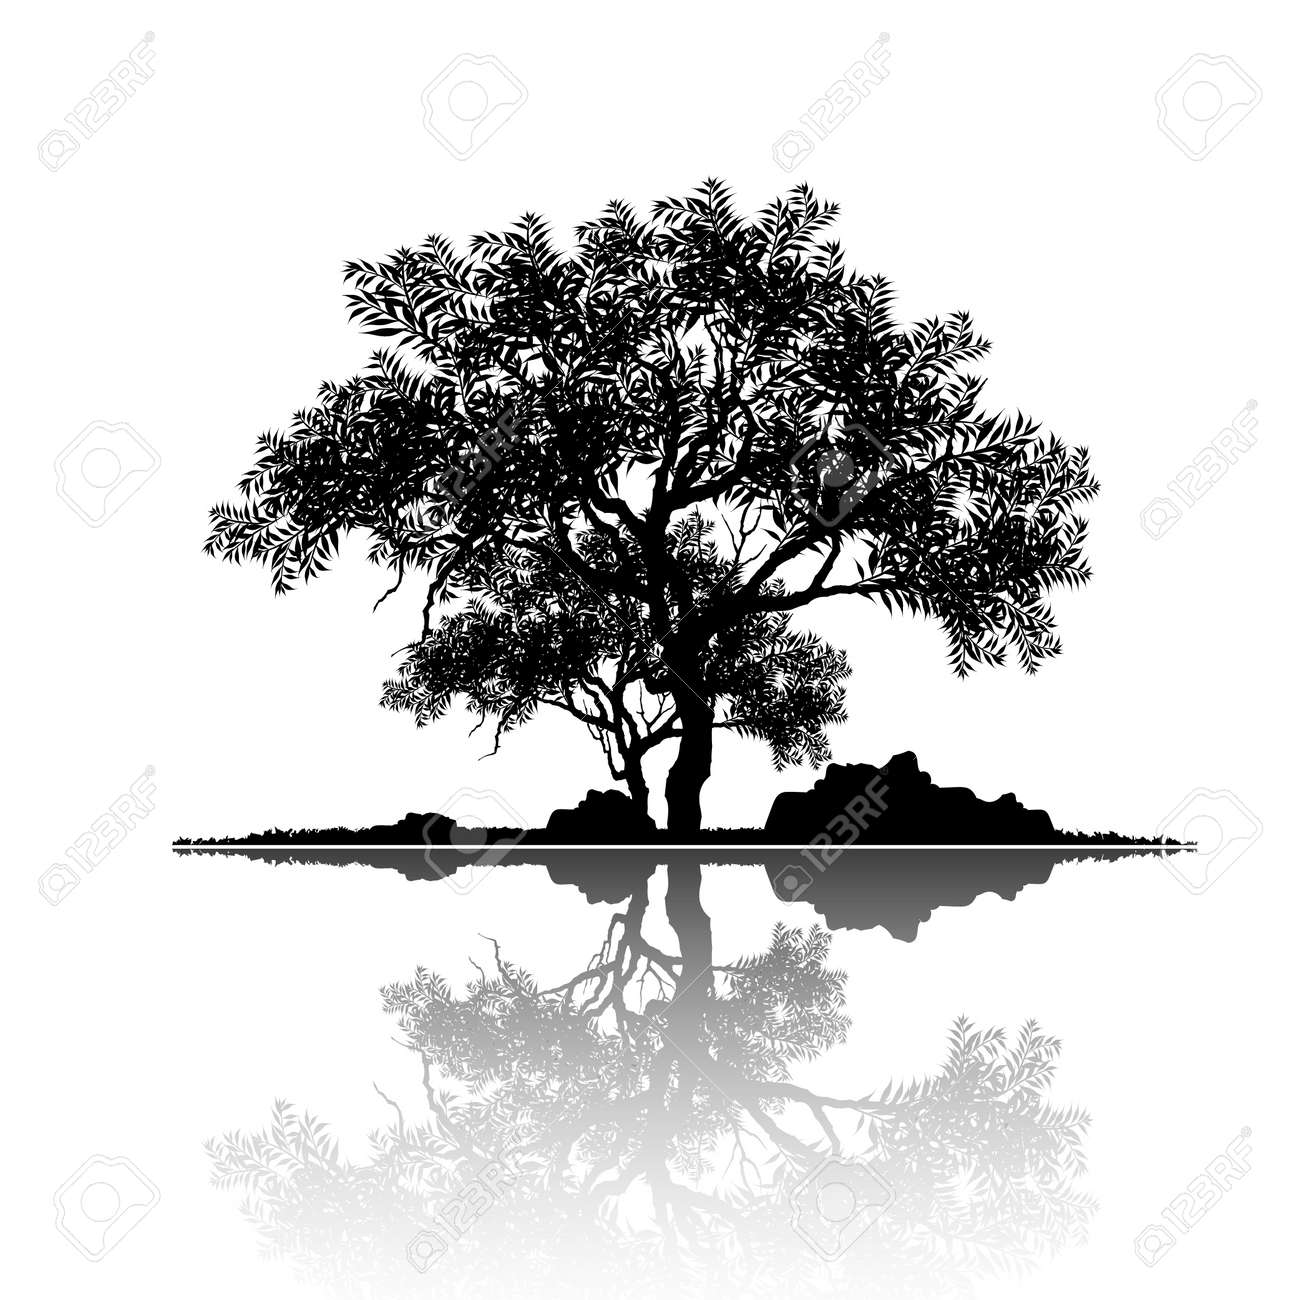 Vector of tree, silhouette icons on white background. tree flat icon for apps and websites. View of natural scenery, illustration. - 112307215